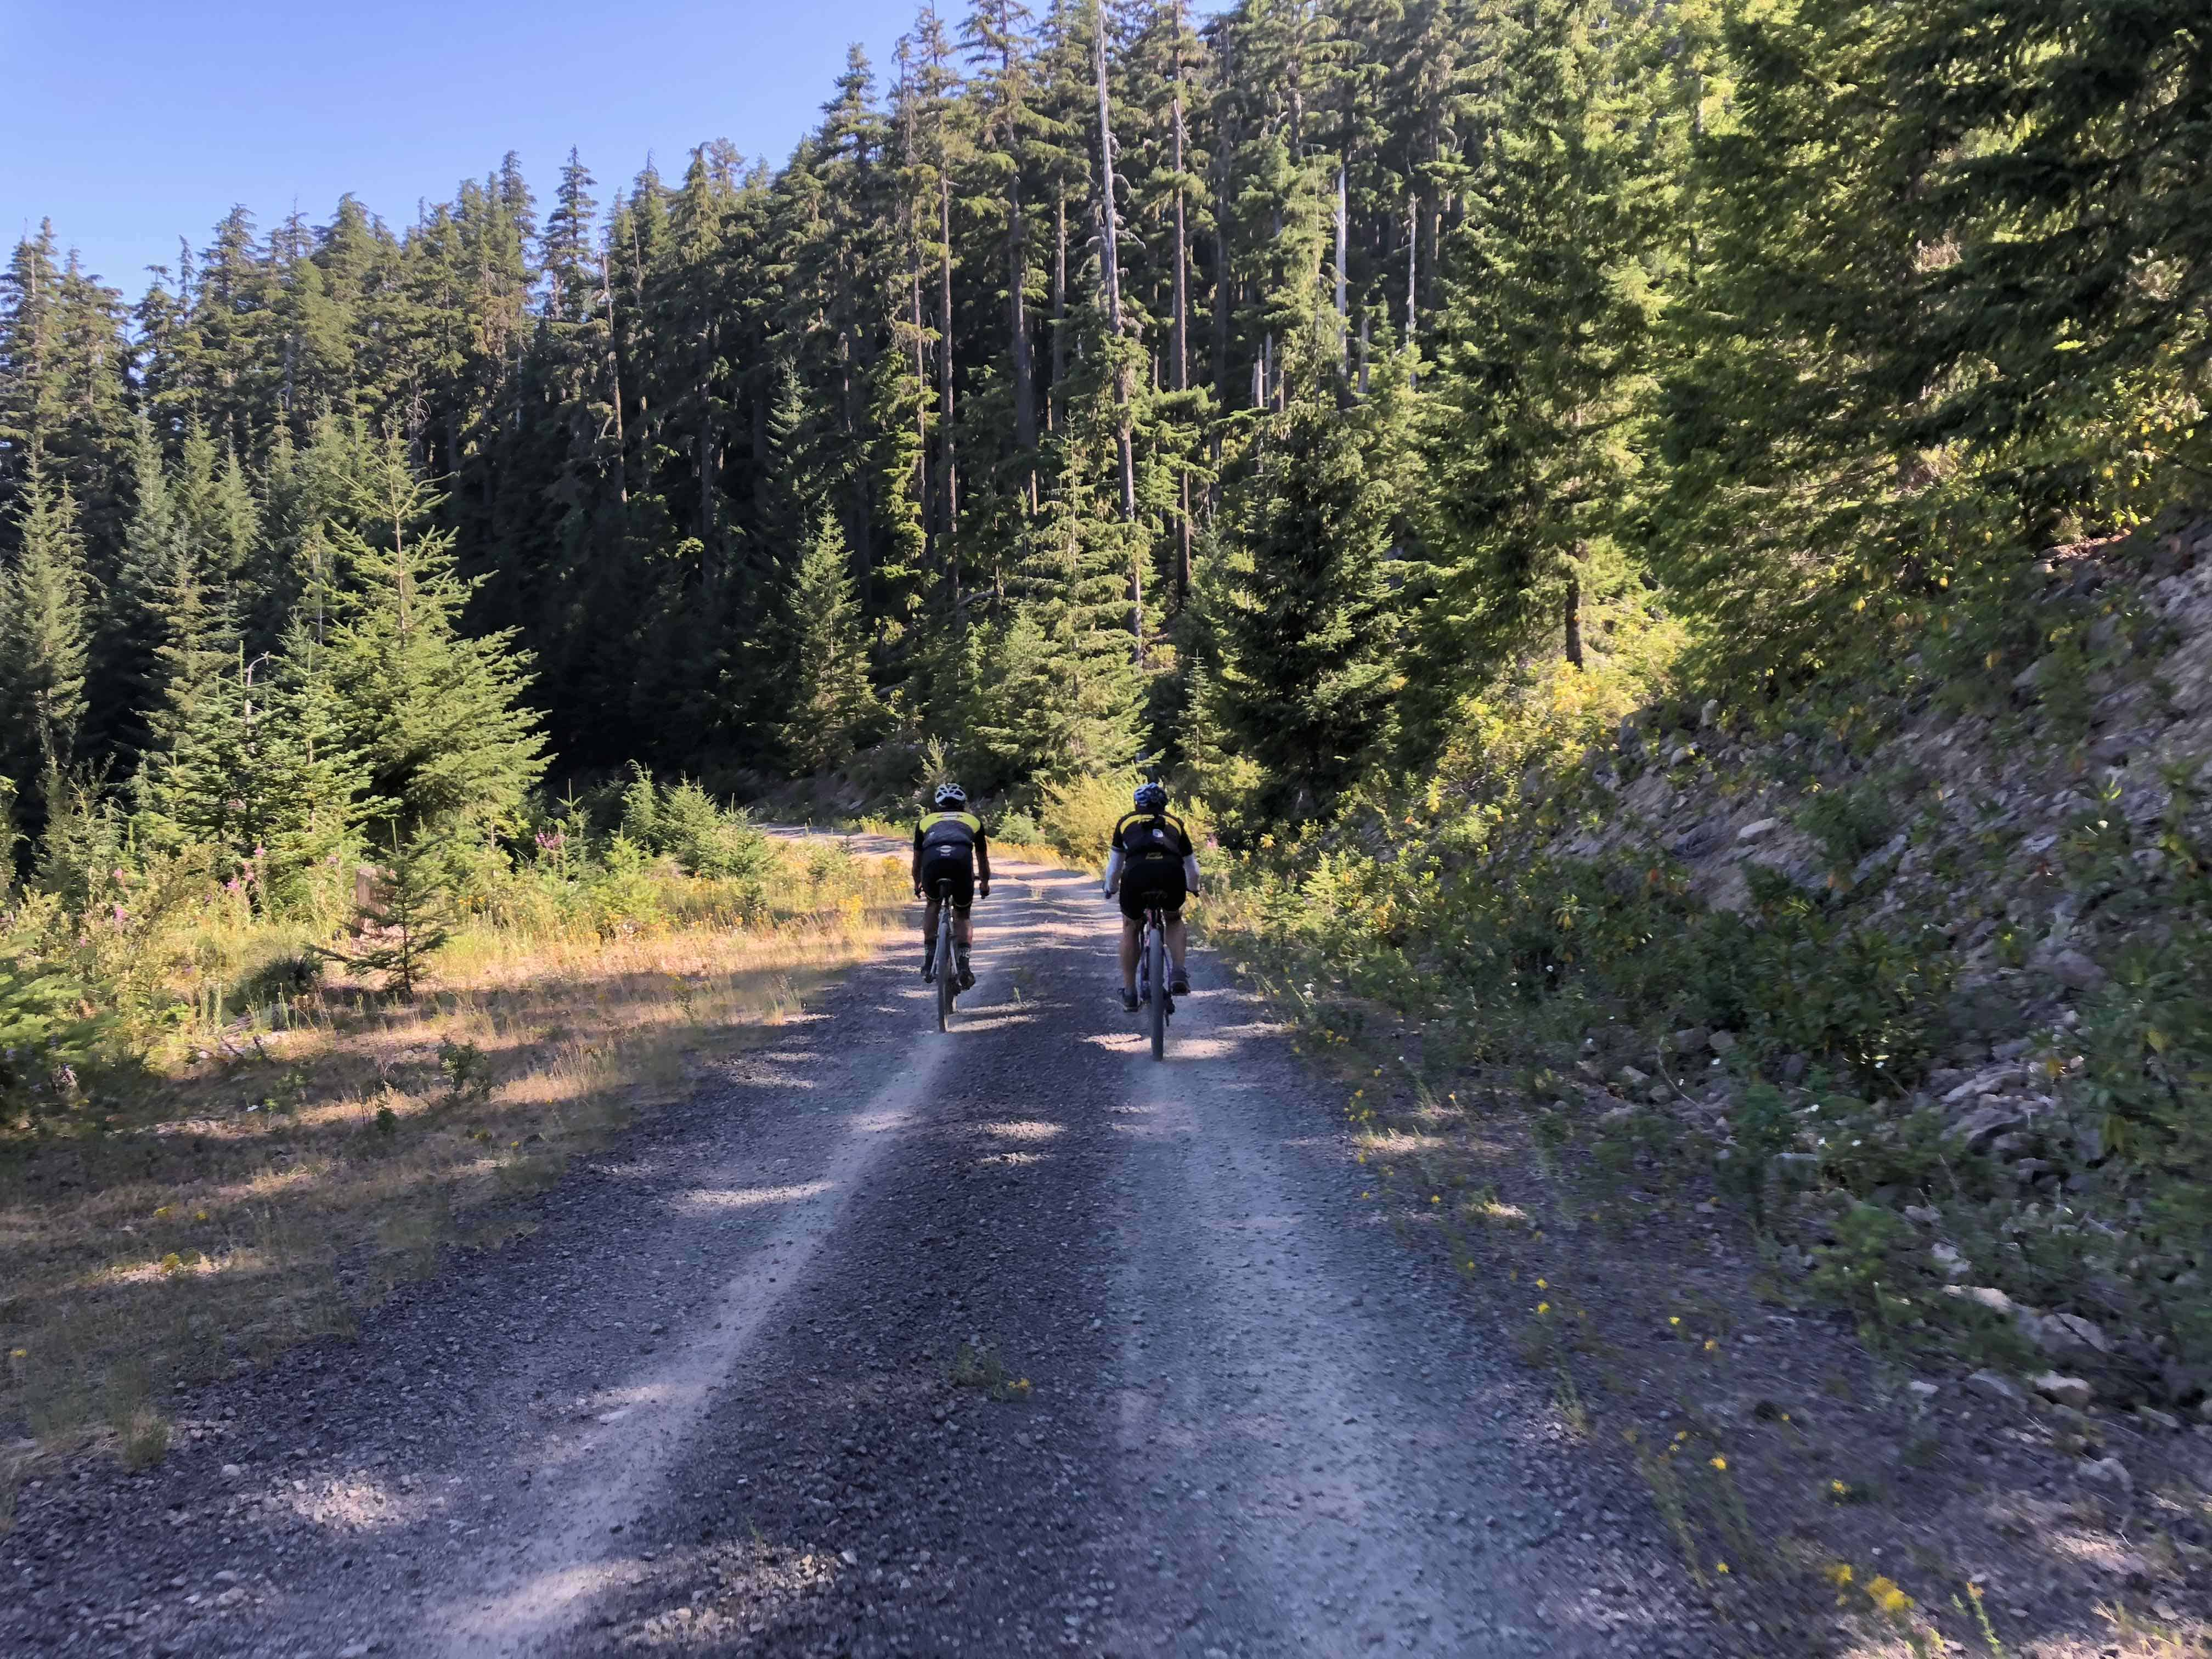 Two Cyclists on gravel Forest Road 1133, Willamette National Forest